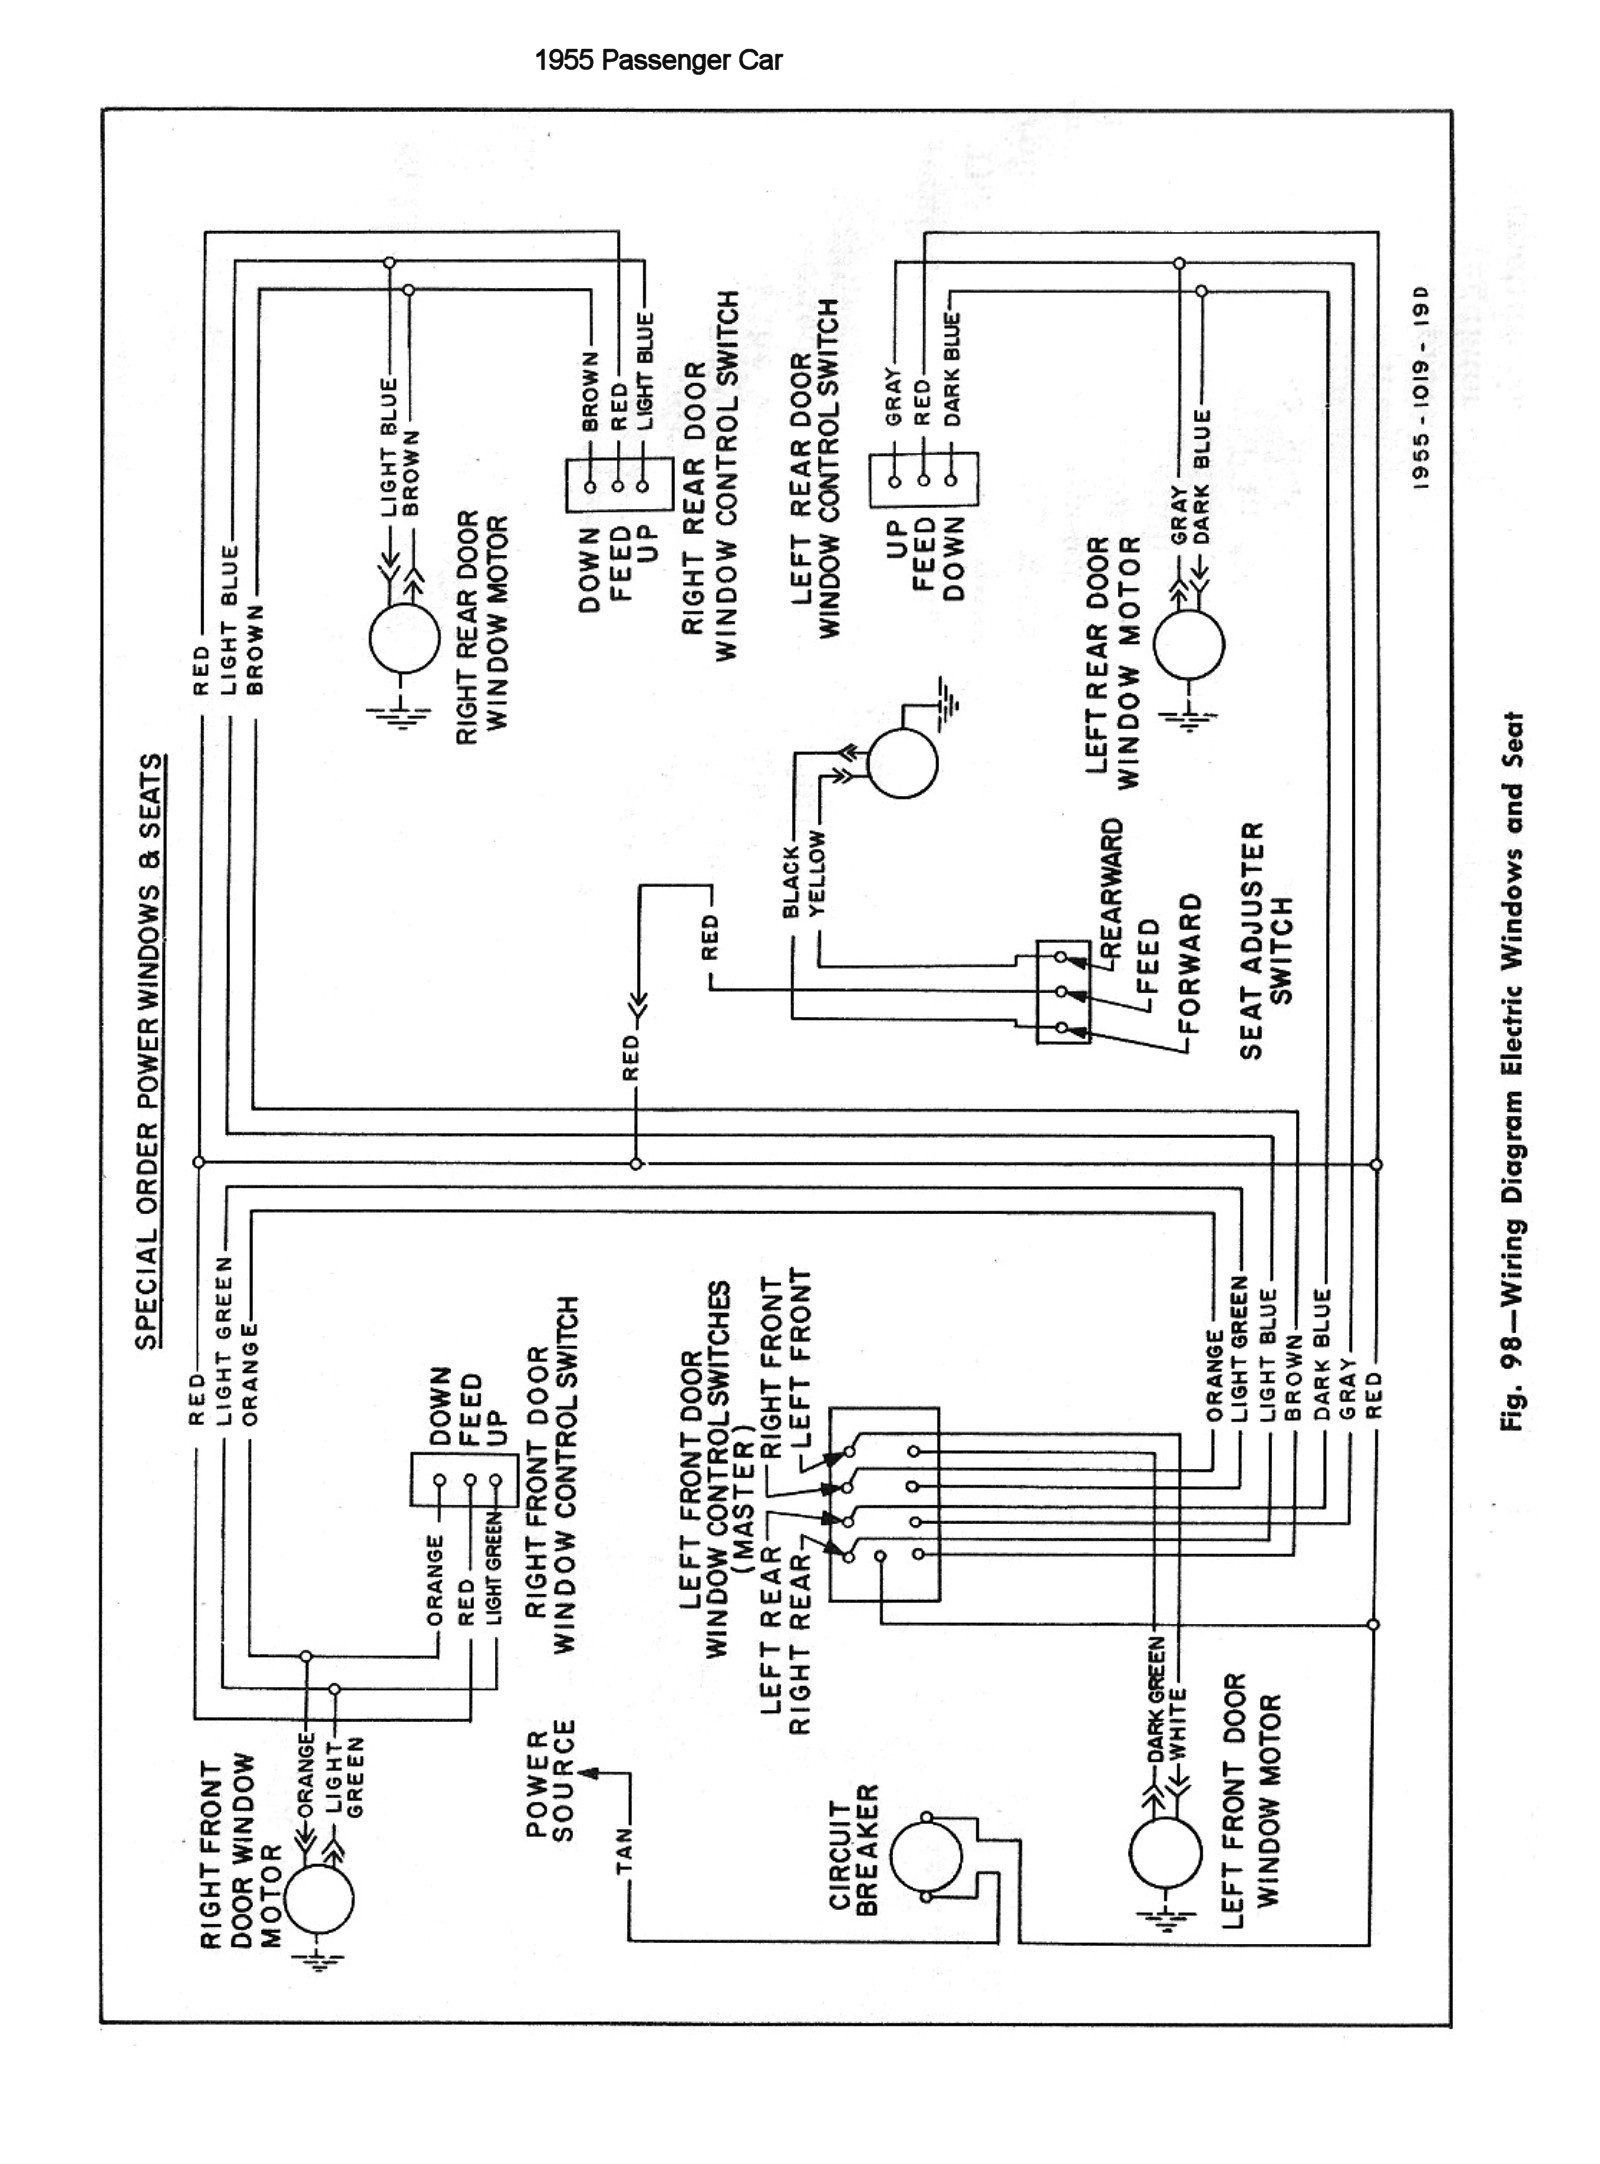 small resolution of 1955 chevy turn signal wiring diagram wiringdiagram org rh pinterest com 57 chevy turn signal wiring